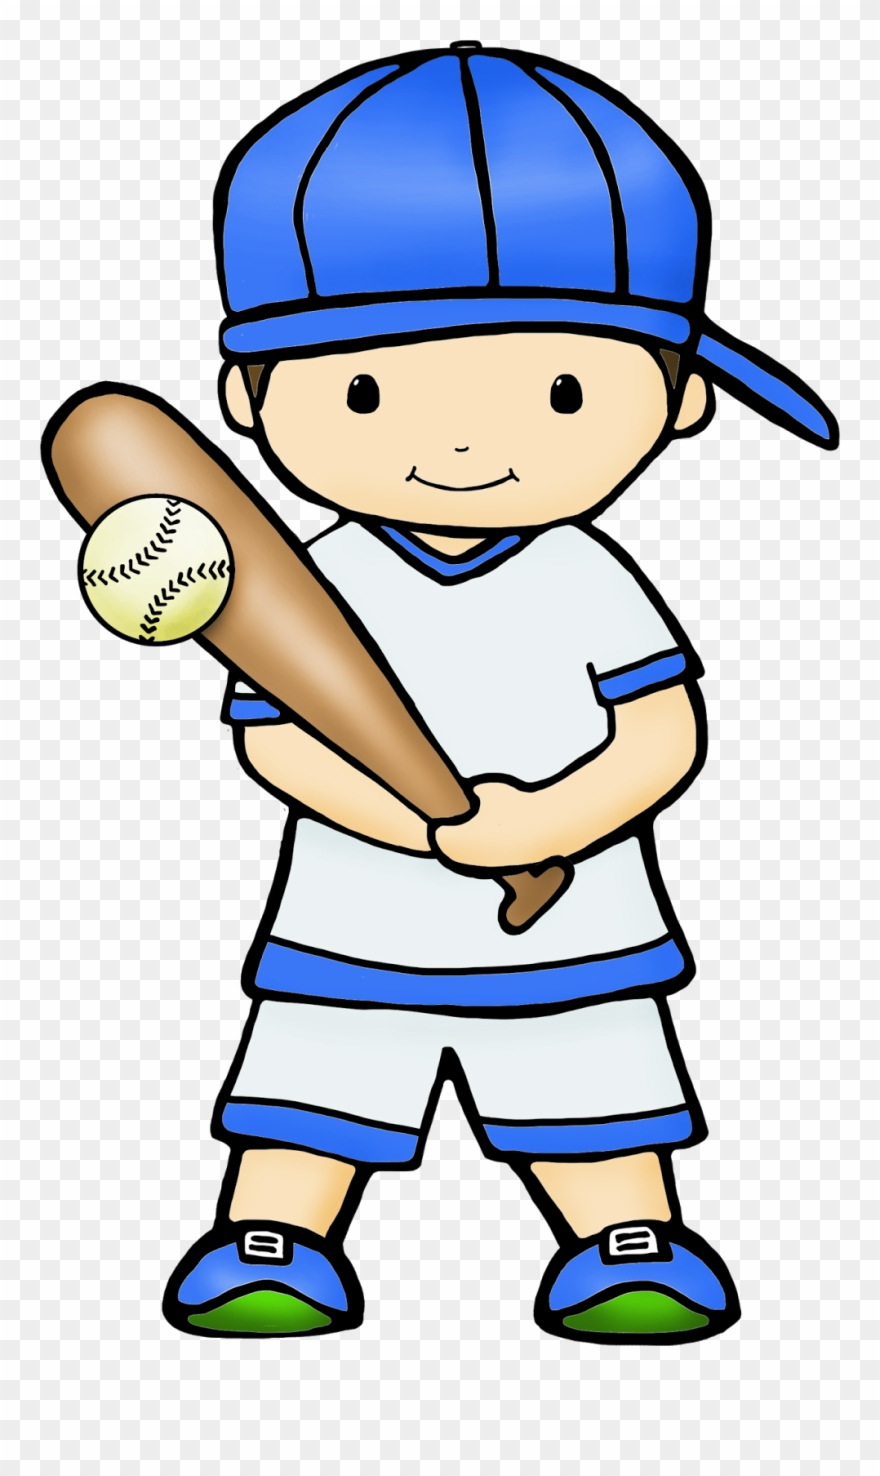 Boys playing baseball clipart clip art black and white library Cute Graphics By - Kid Play Baseball Cartoon Png Clipart (#2097501 ... clip art black and white library